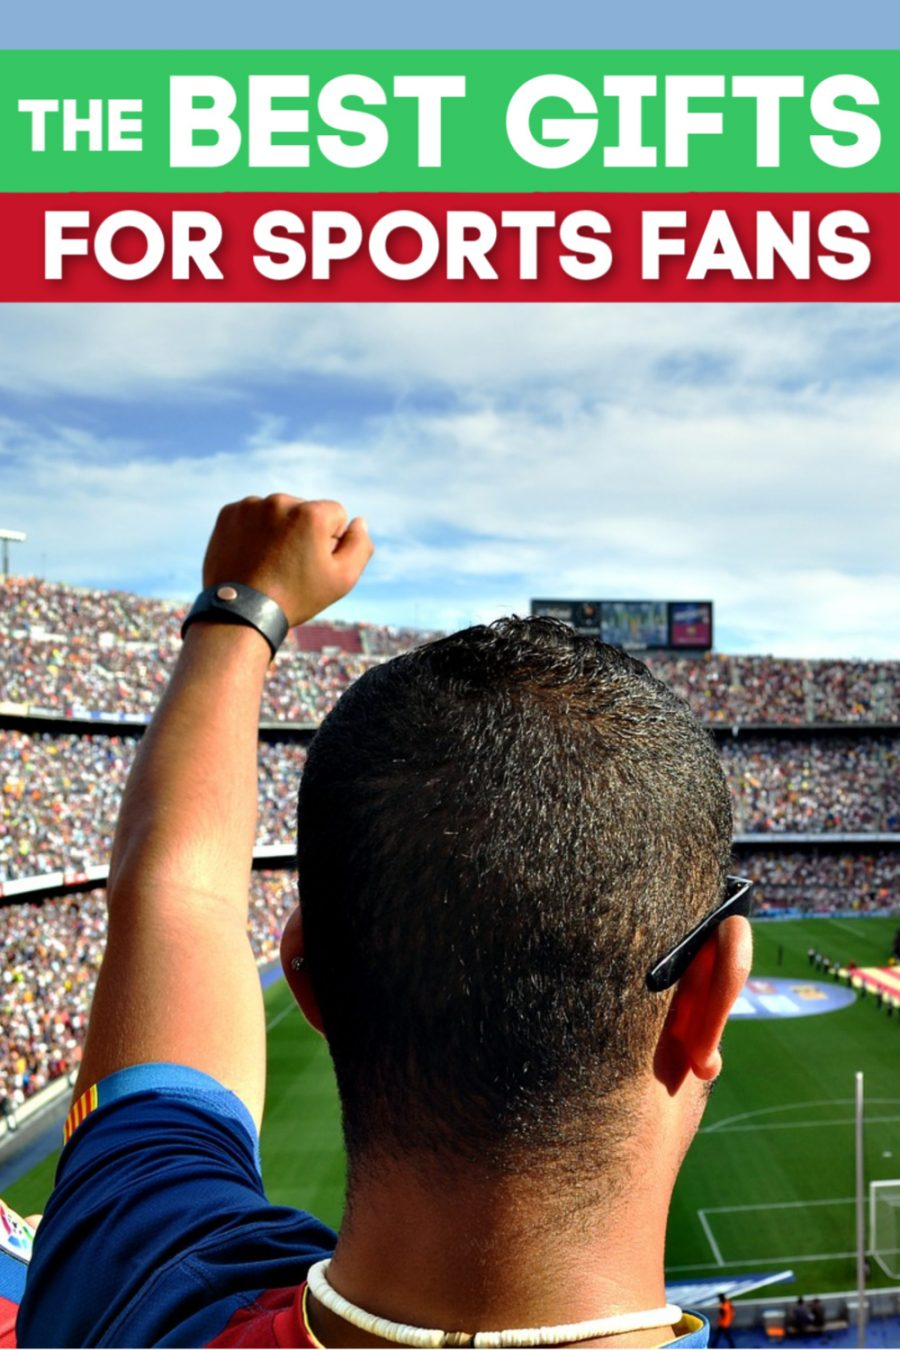 The BEST Gifts for Sports Fans